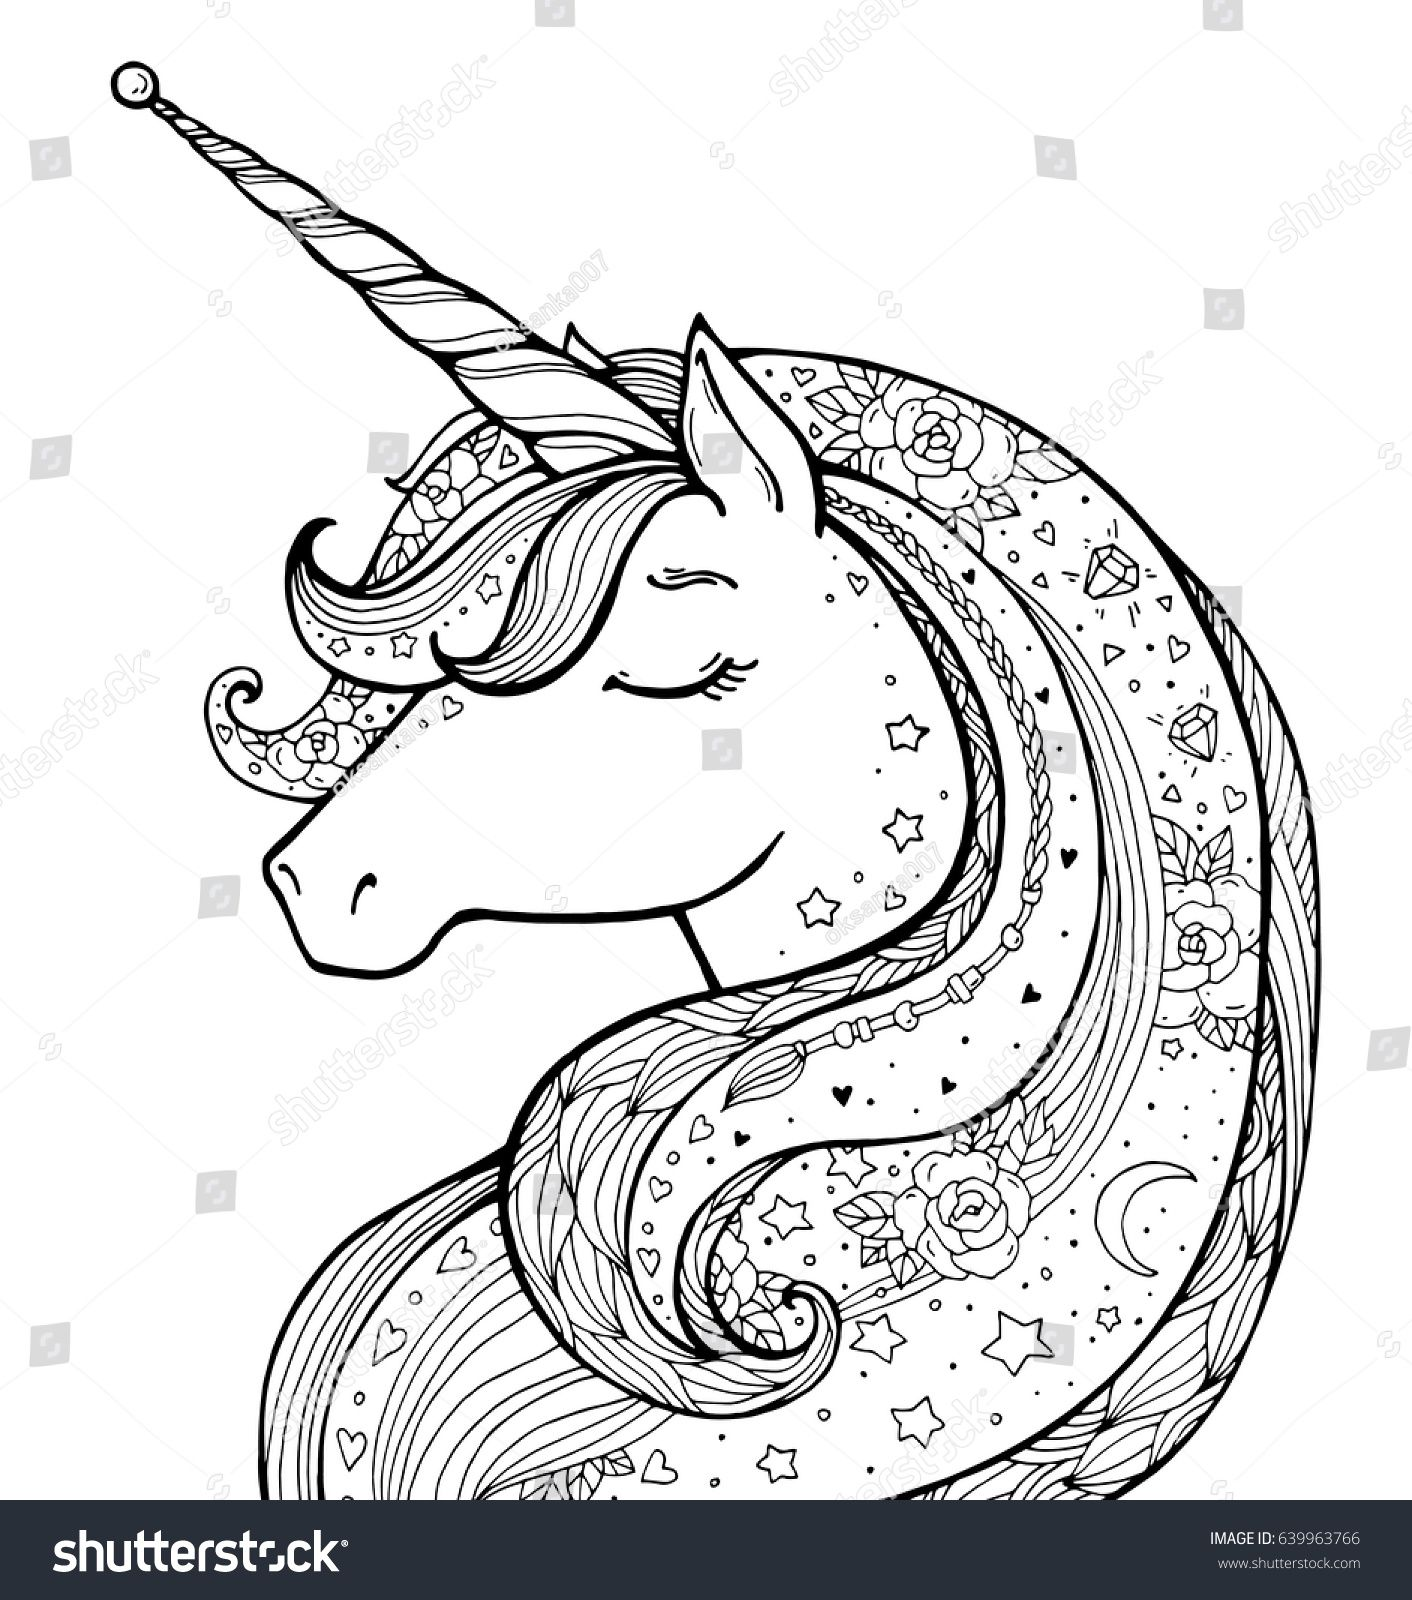 Unicorn Magical Animal Vector Artwork Black And White Coloring Book Pages For Adults And Kids Funny Unicorn Coloring Pages Vector Artwork Unicorn Drawing